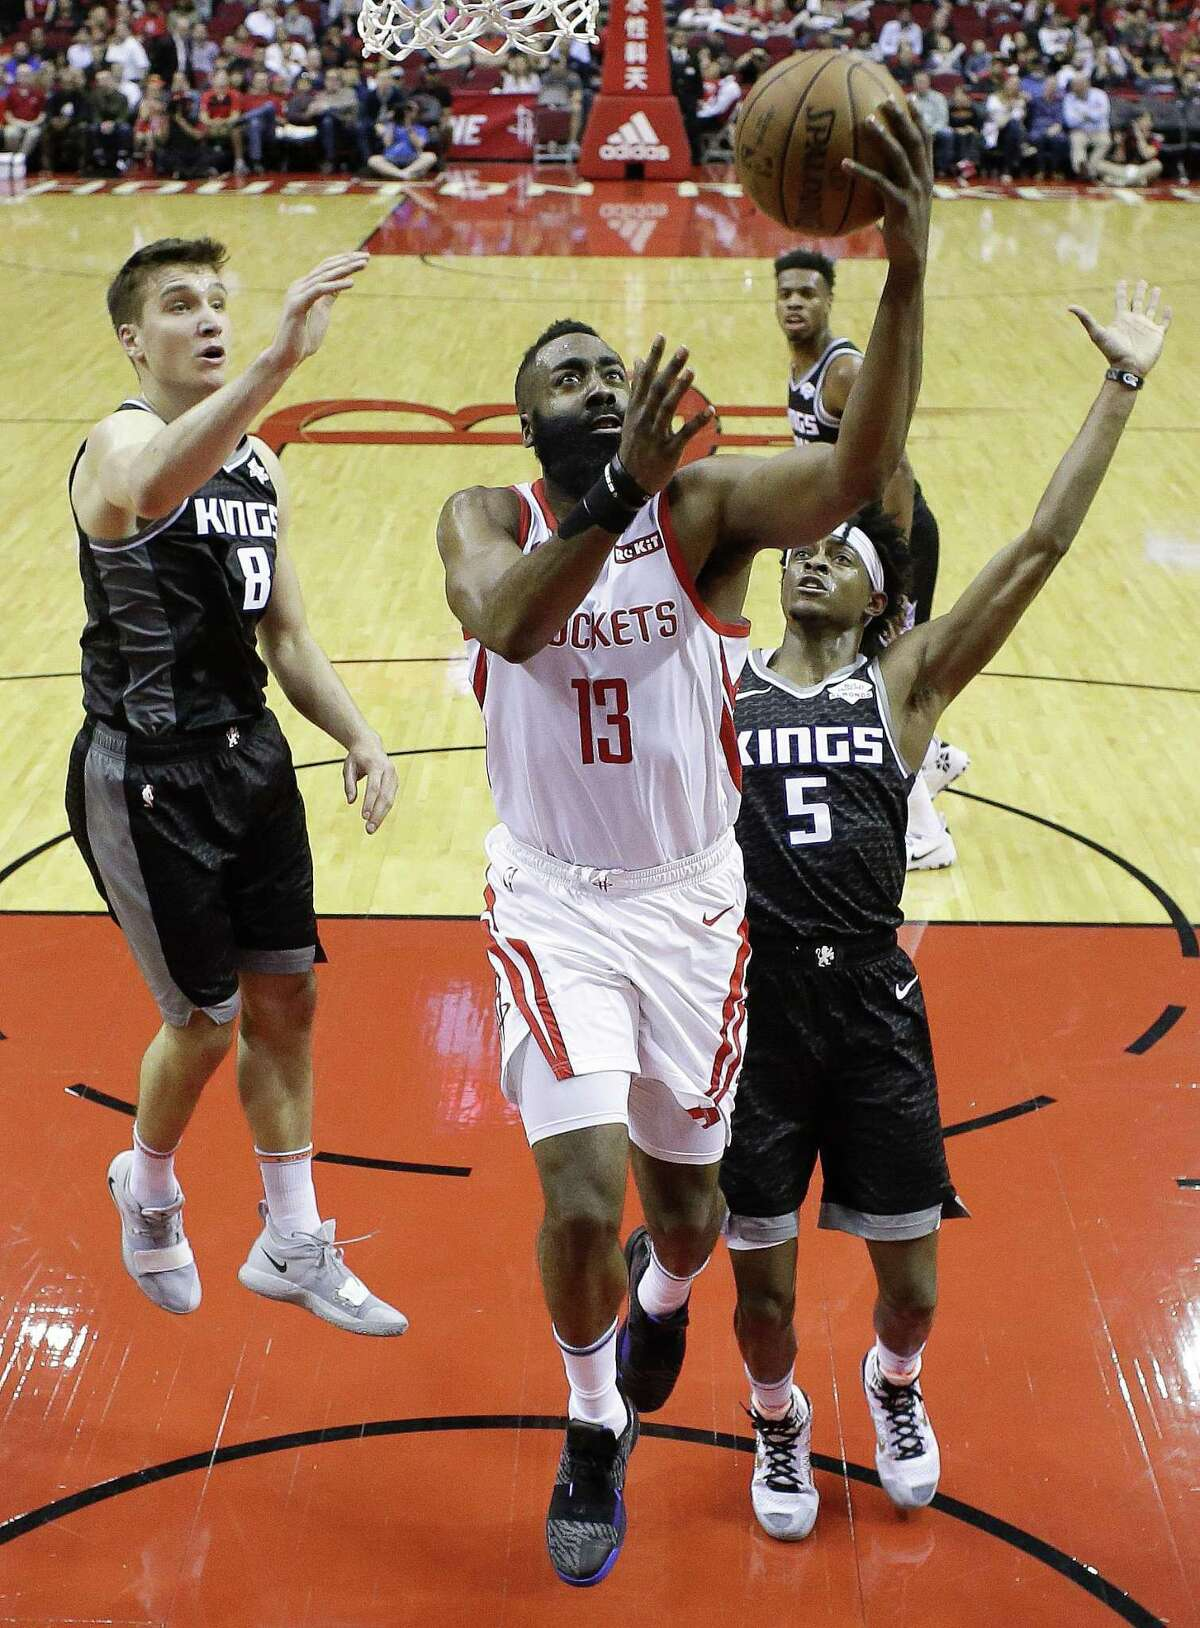 Rockets guard James Harden splits the Kings' defense on his way to 50 points. Harden filled out his triple-double with 11 rebounds and 10 assists. He was 17-for-18 from the free-throw line.